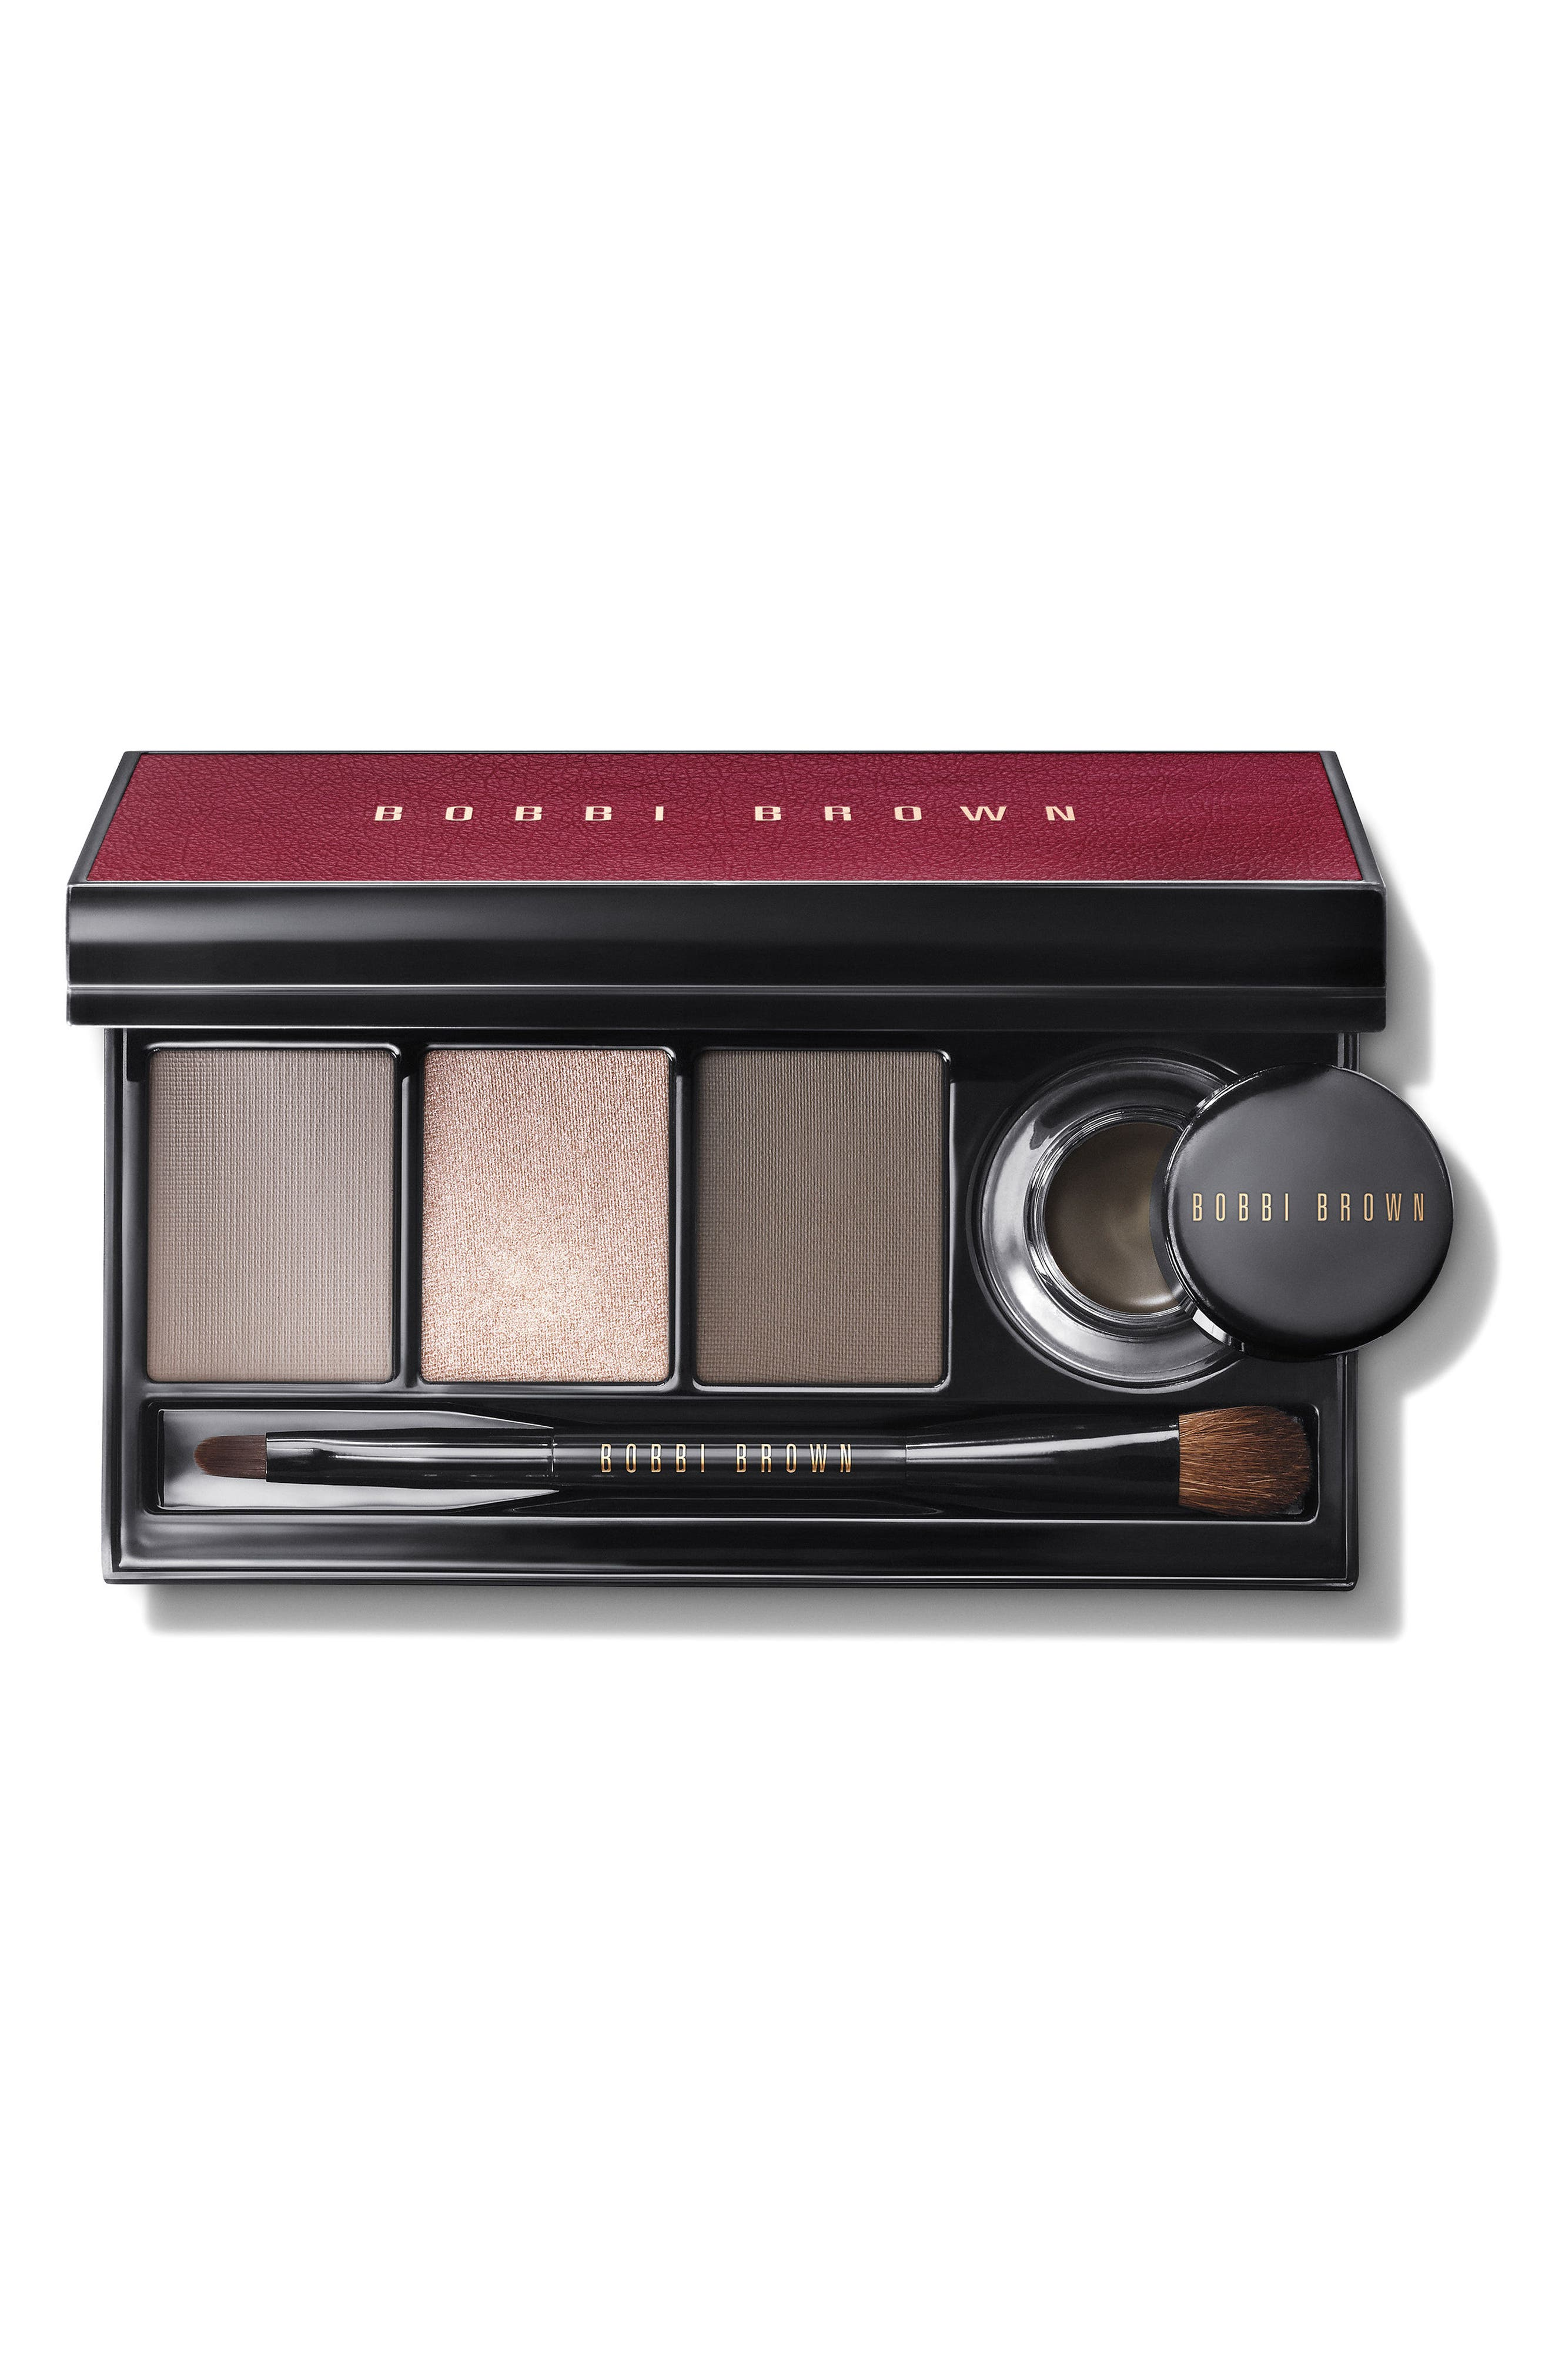 Main Image - Bobbi Brown Satin & Caviar Eyeshadow & Long-Wear Gel Eyeliner Palette ($106 Value)